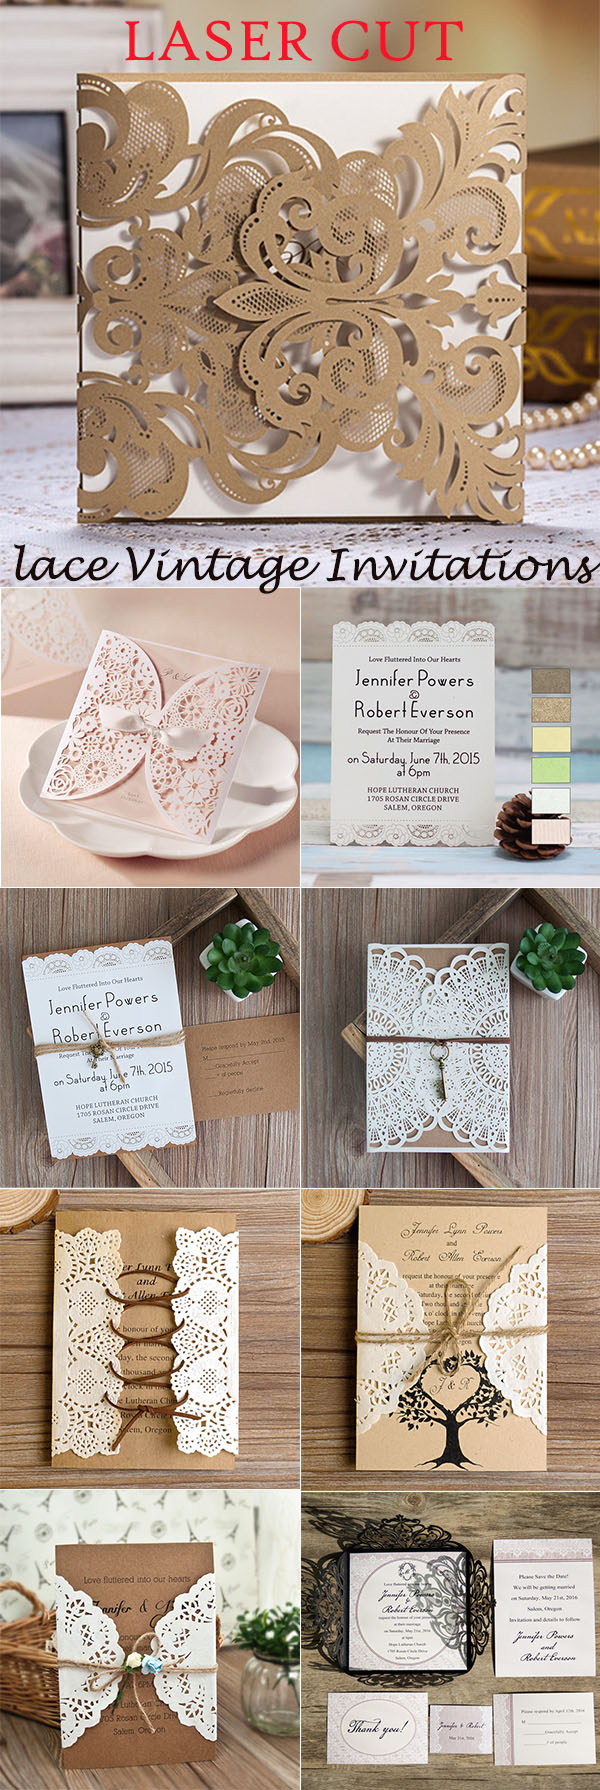 50+ Great Ideas to Incoporate Lace Into Your Vintage Weddings ...